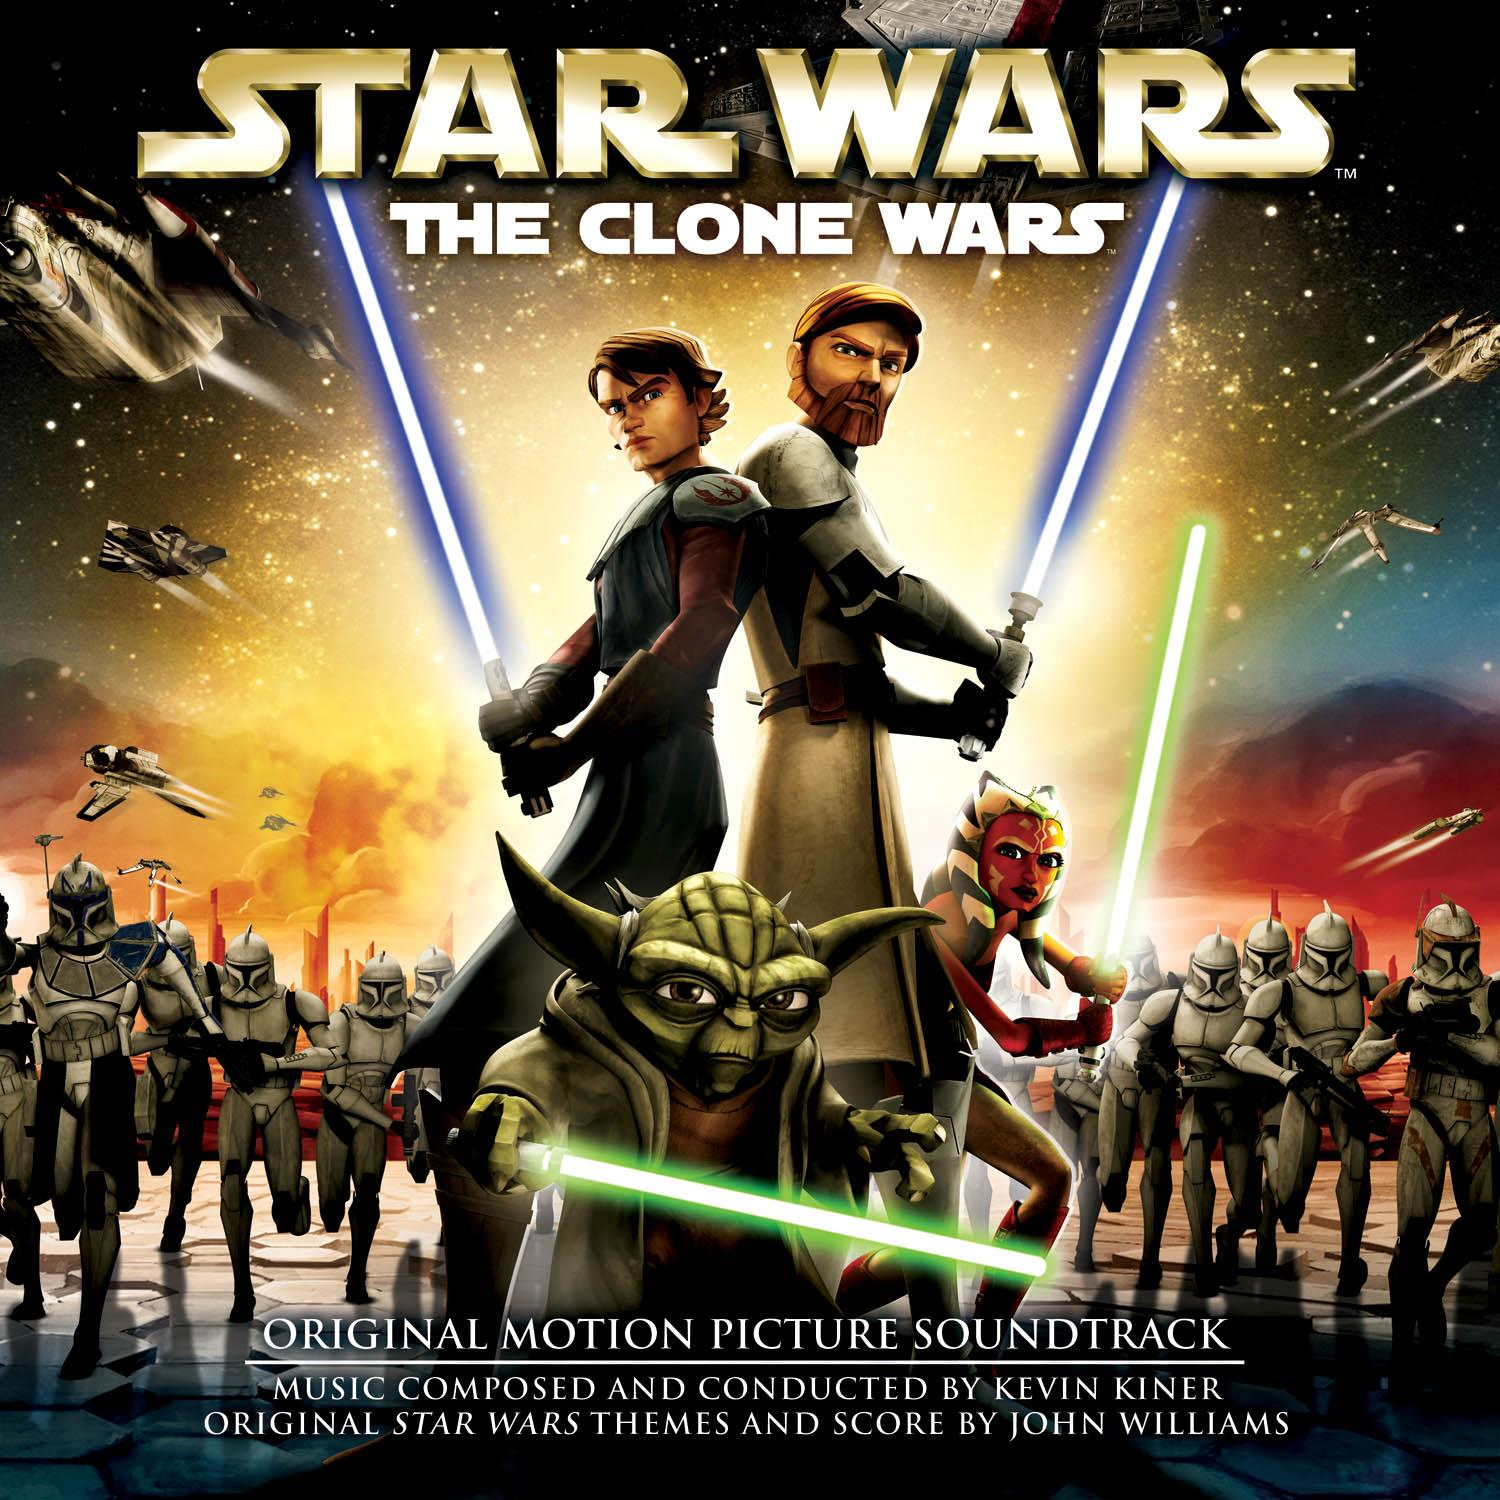 Star Wars Episode 1 Soundtrack Torrent